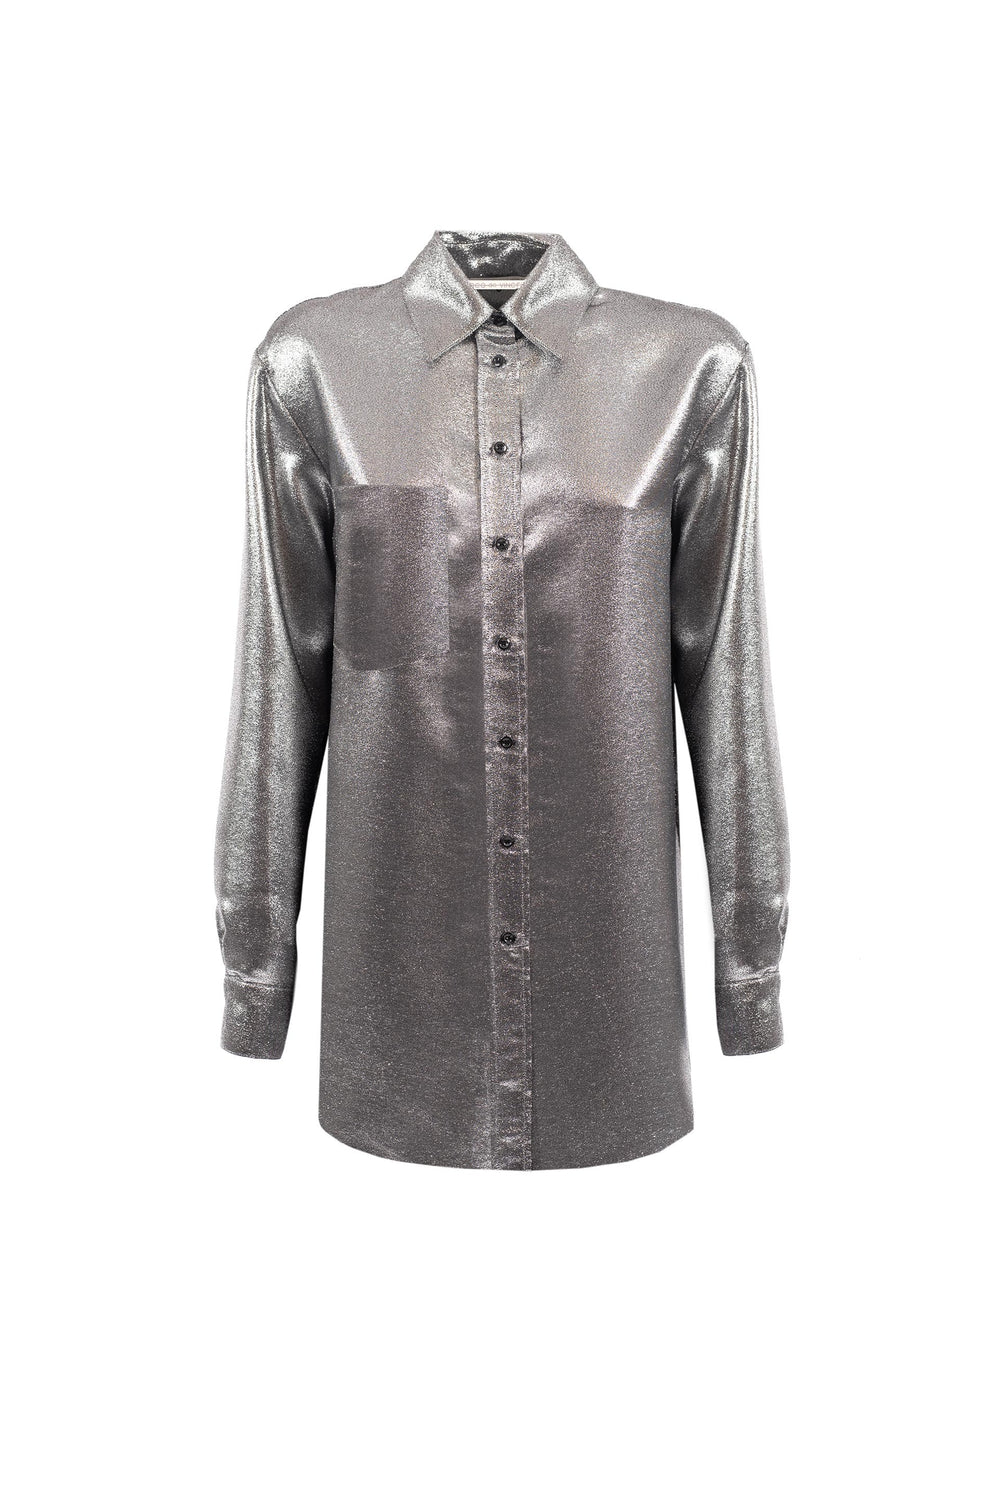 Silver Lurex blouse